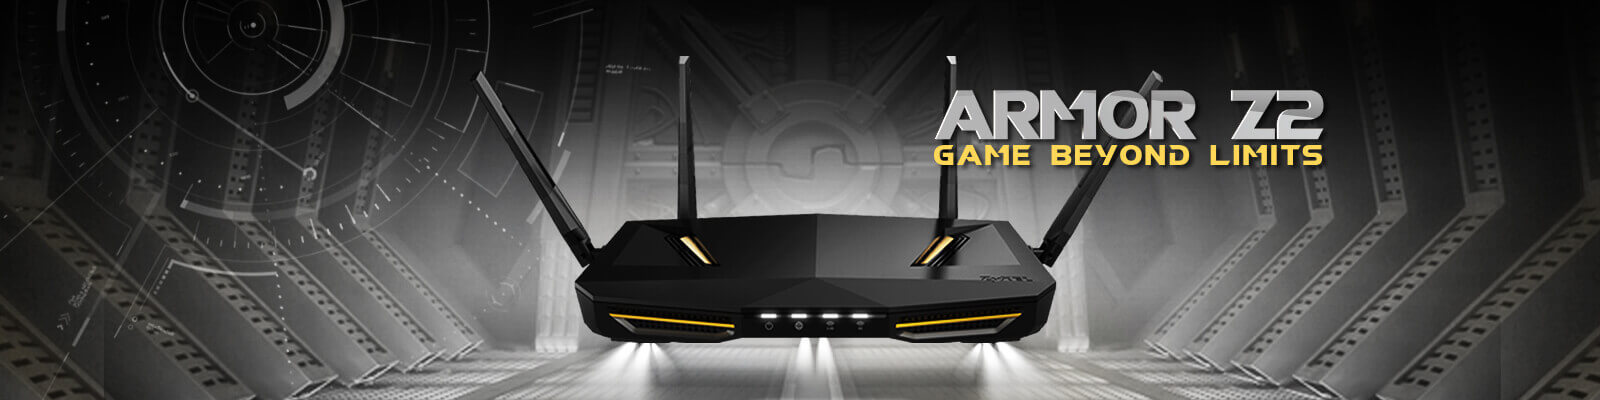 ARMOR Z2 AC2600 MU-MIMO Dual-Band Wireless Gigabit Router